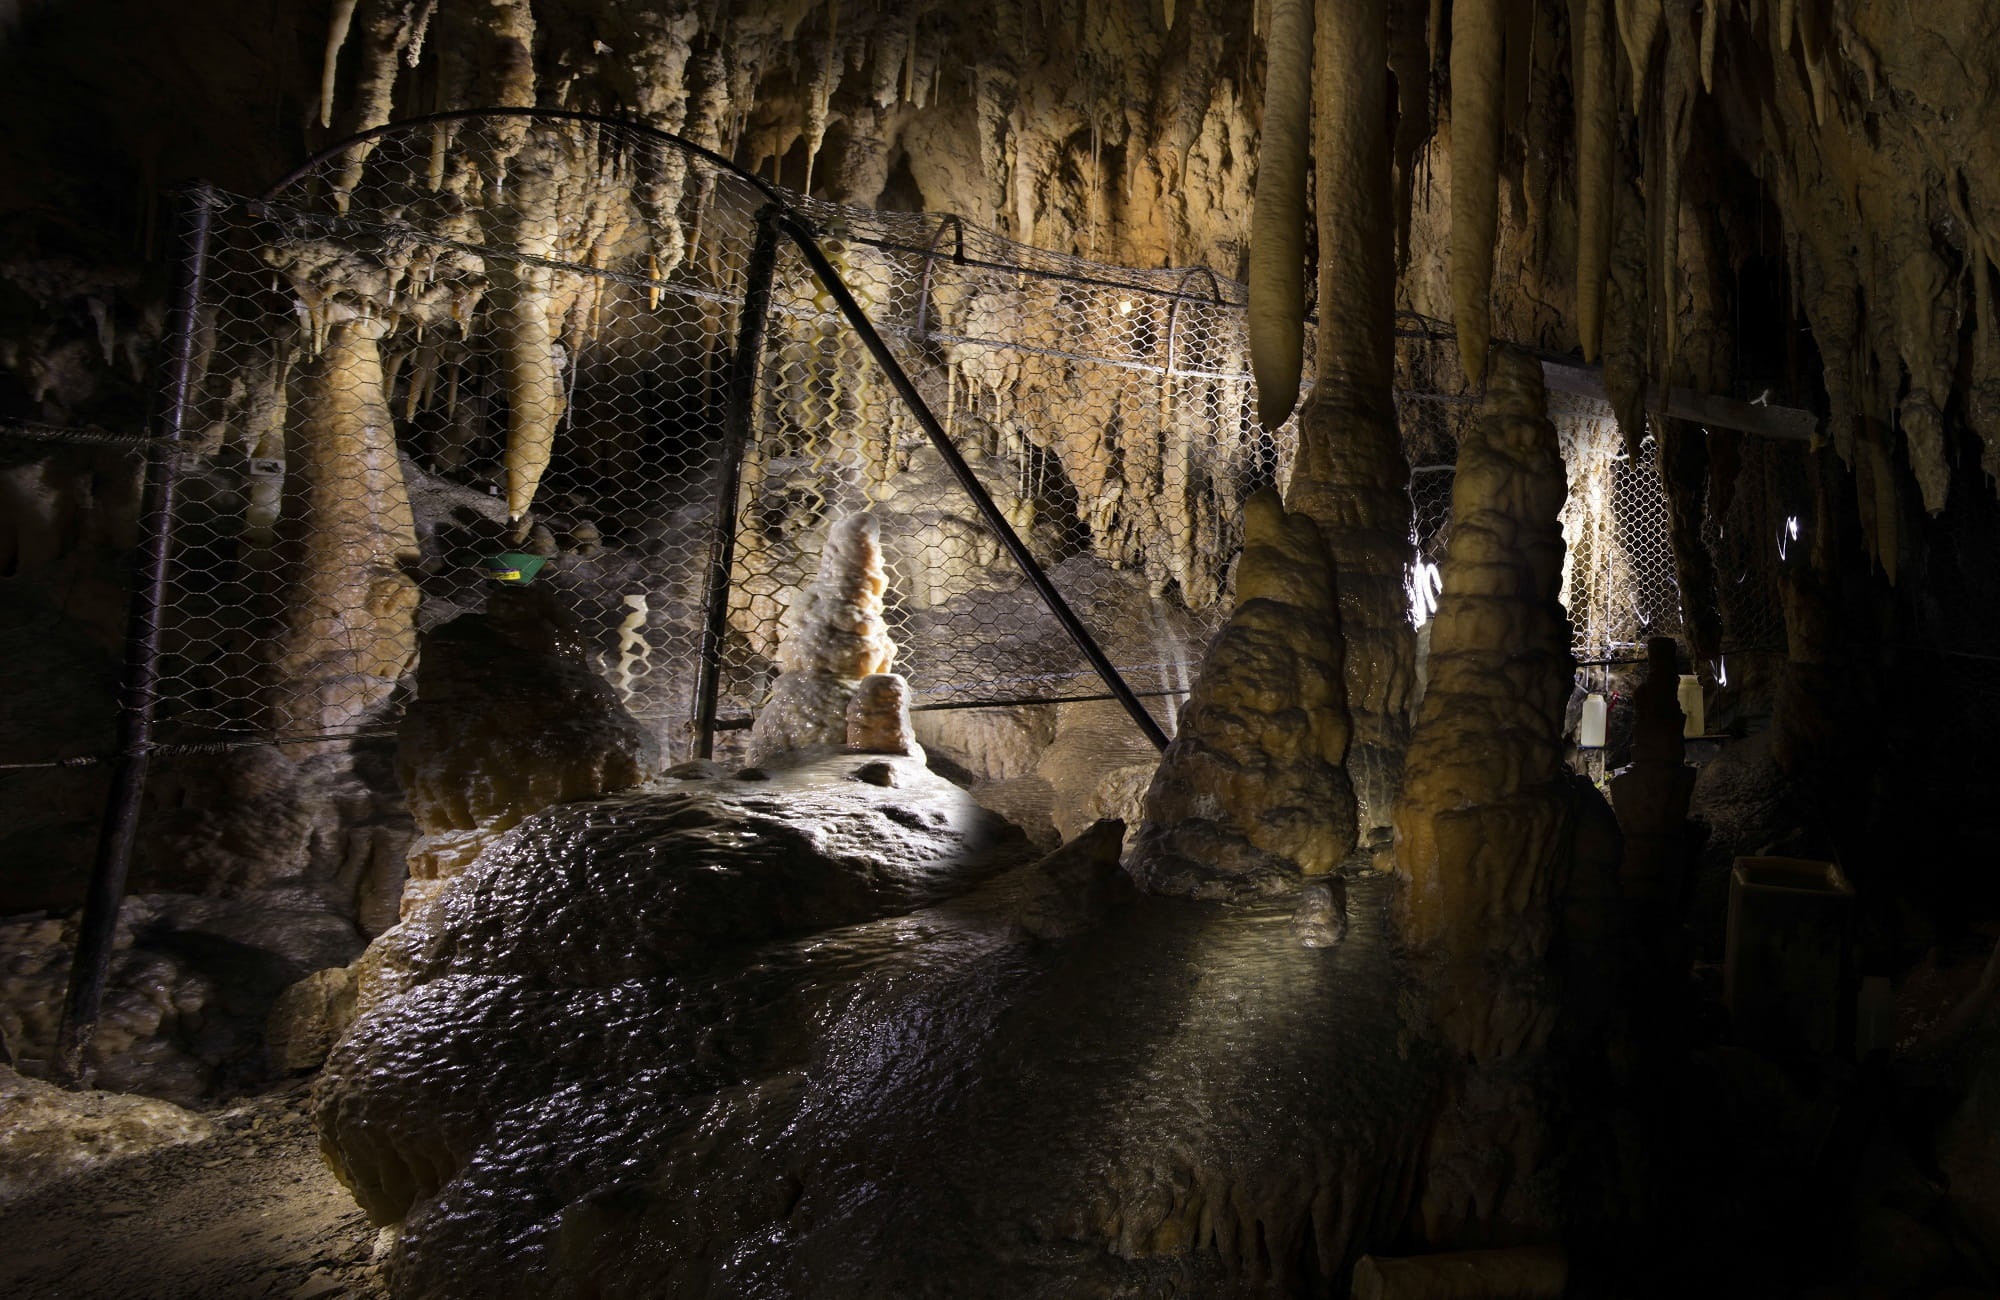 Harrie Wood Cave, Yarrangobilly Caves, Kosciuszko National Park. Photo: Murray Vanderveer